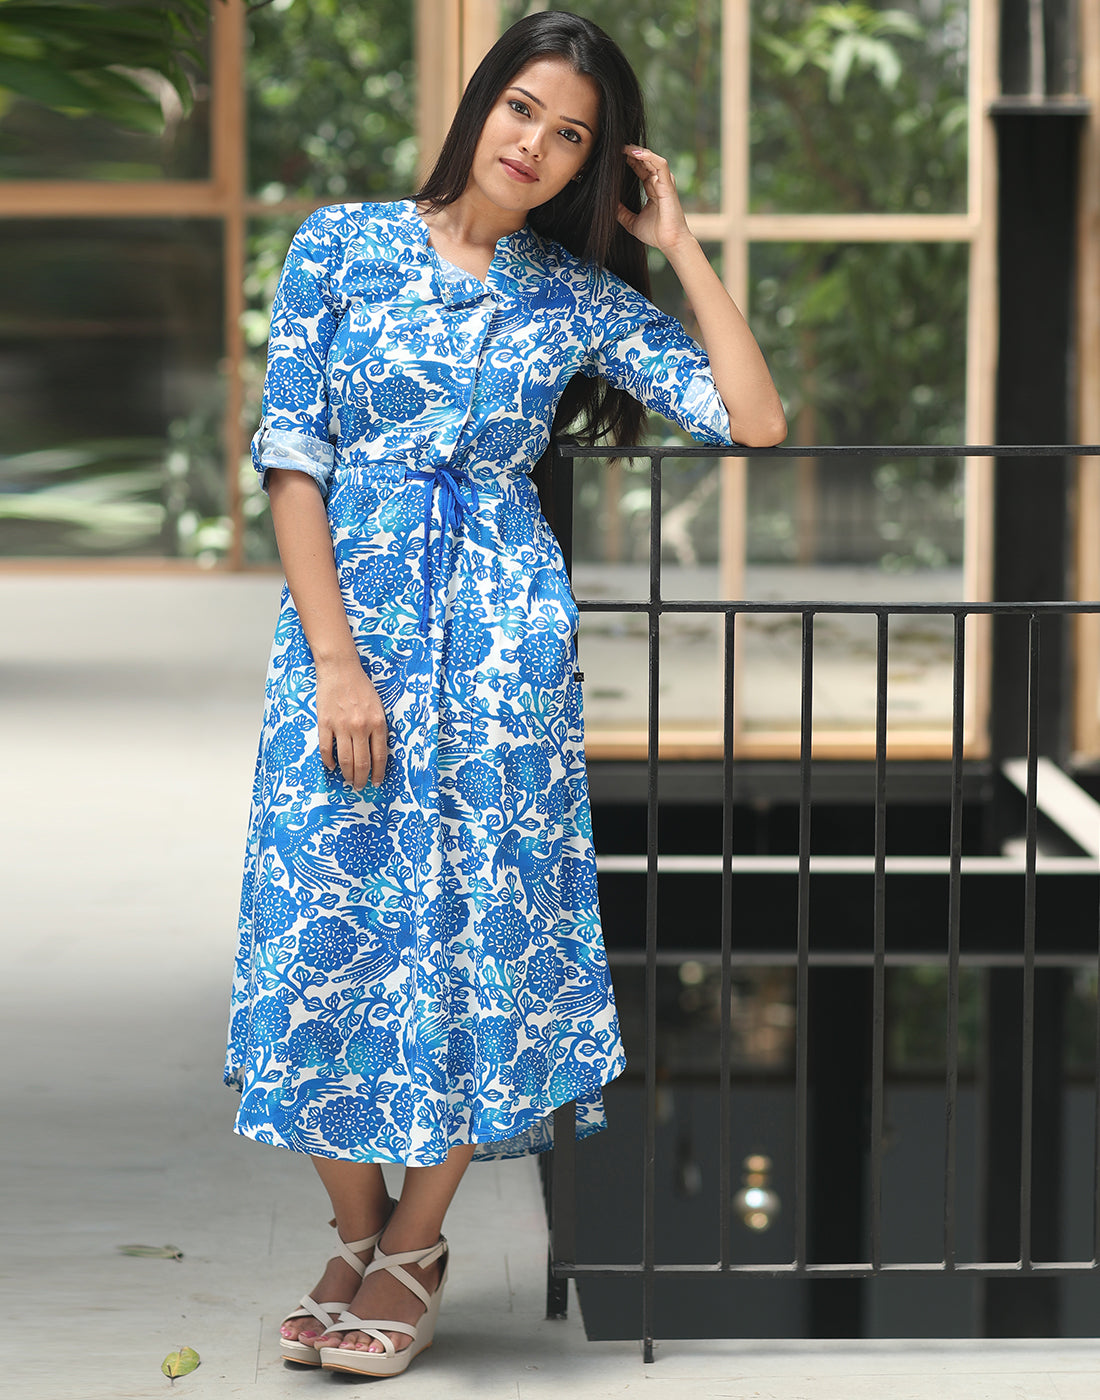 Aqua Blue Floral Printed Maxi Dress Style Anarkali